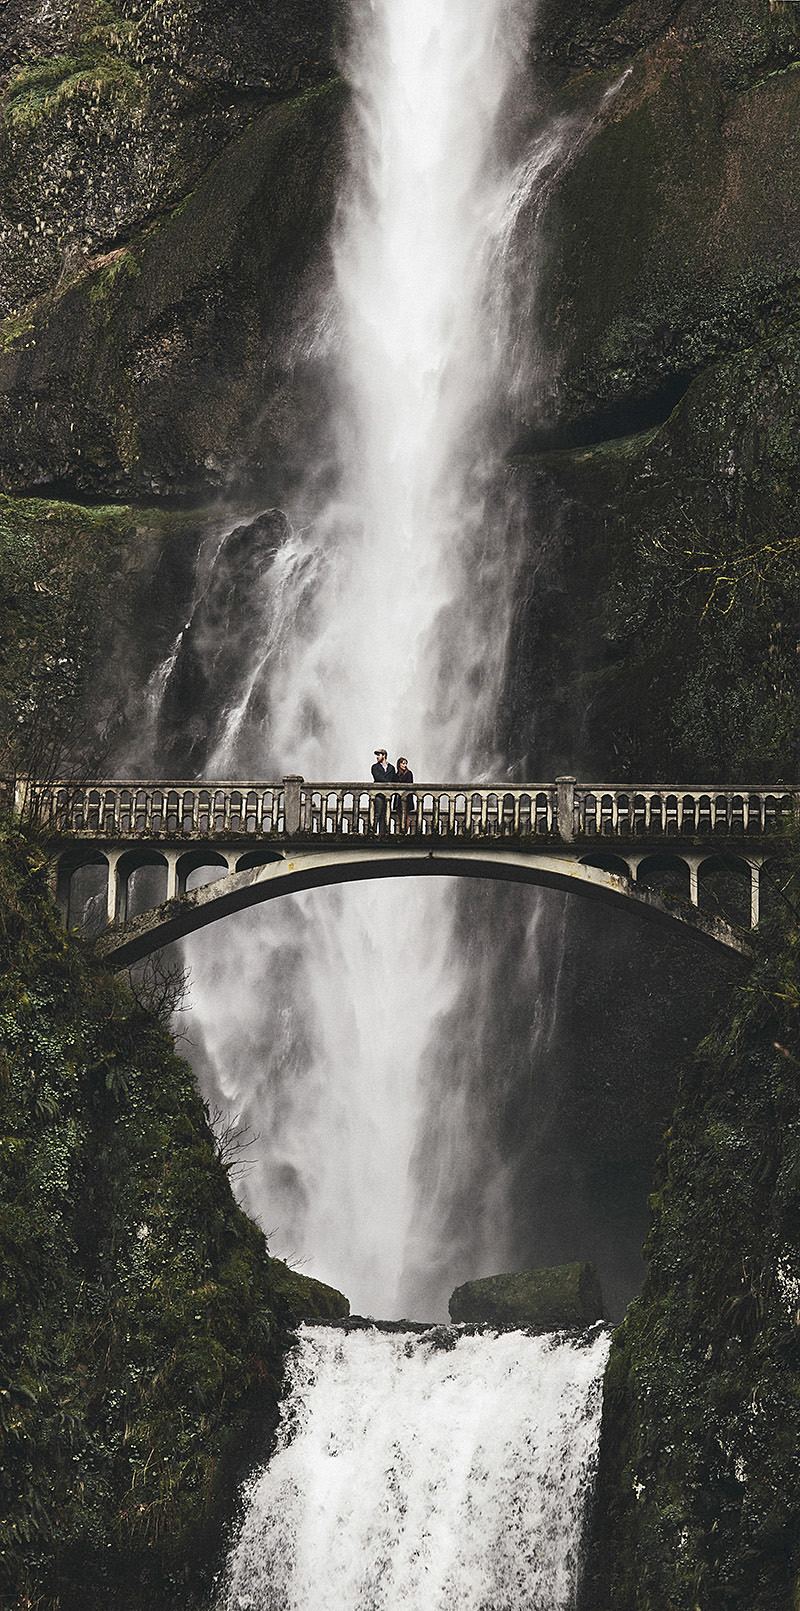 Multnomah Falls Wedding Photographer - Karen and Josh on a bridge, with the waterfall behind them